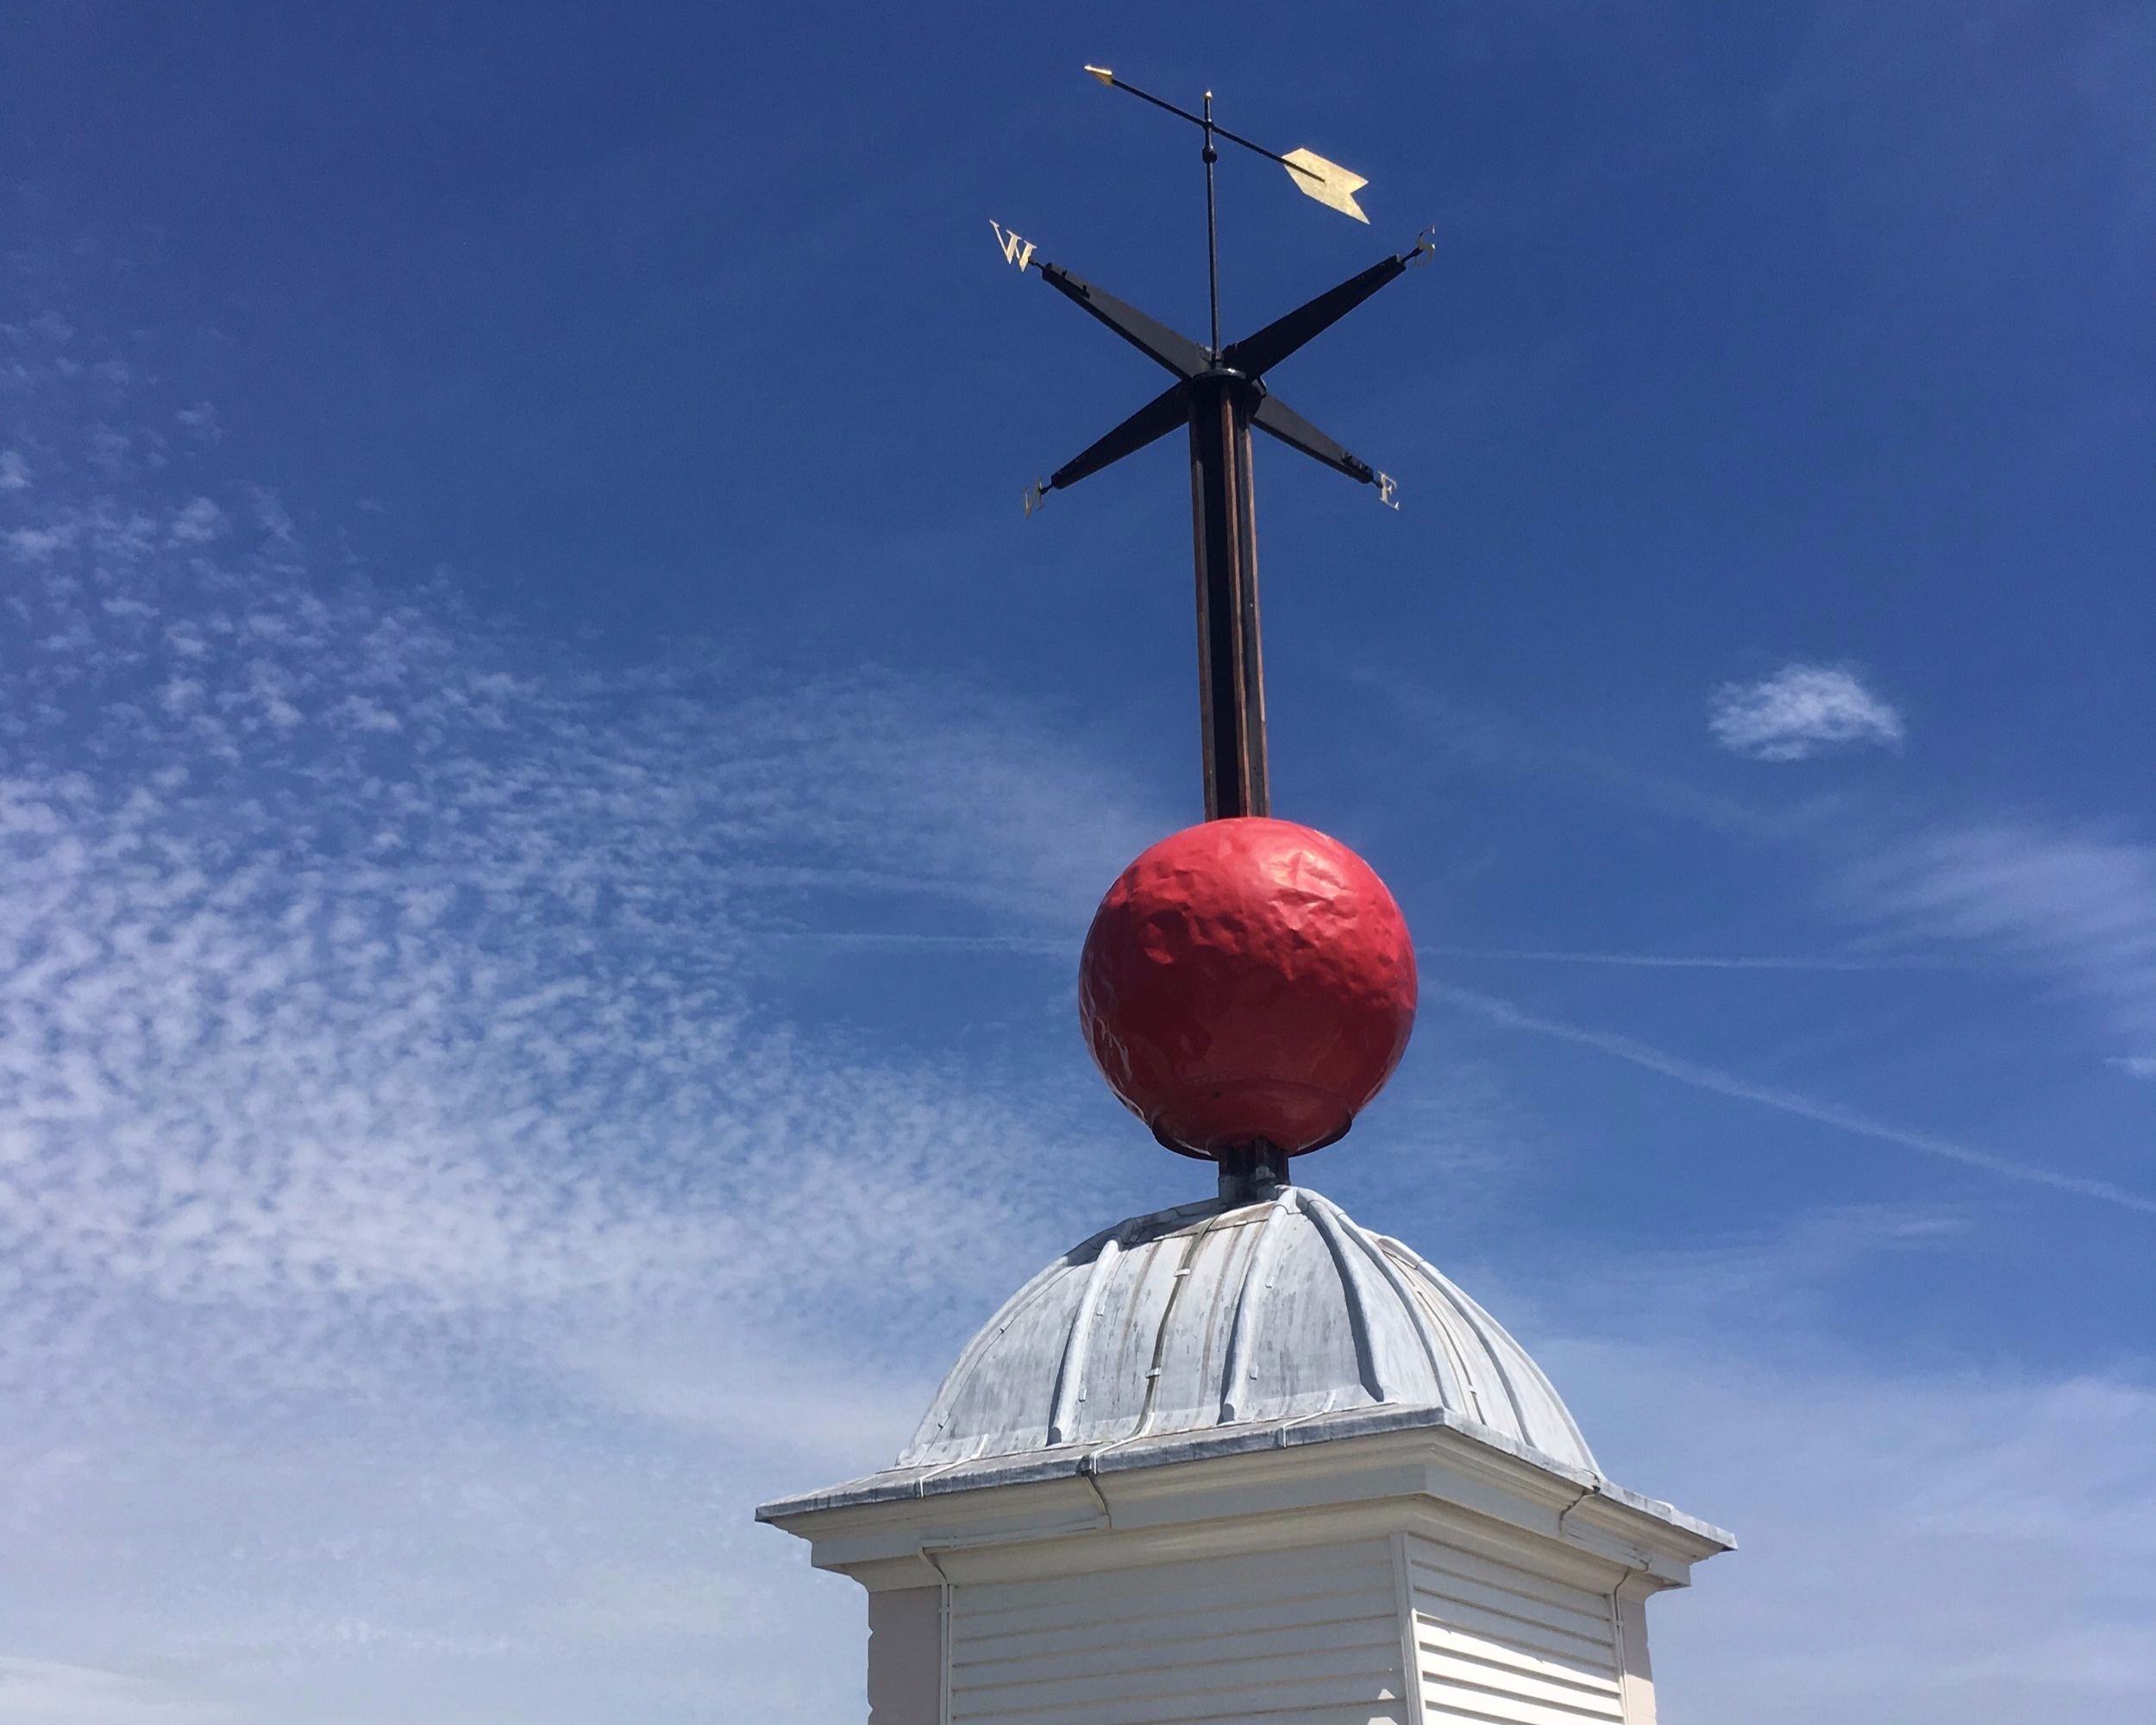 The time ball at the    Royal Observatory Greenwich